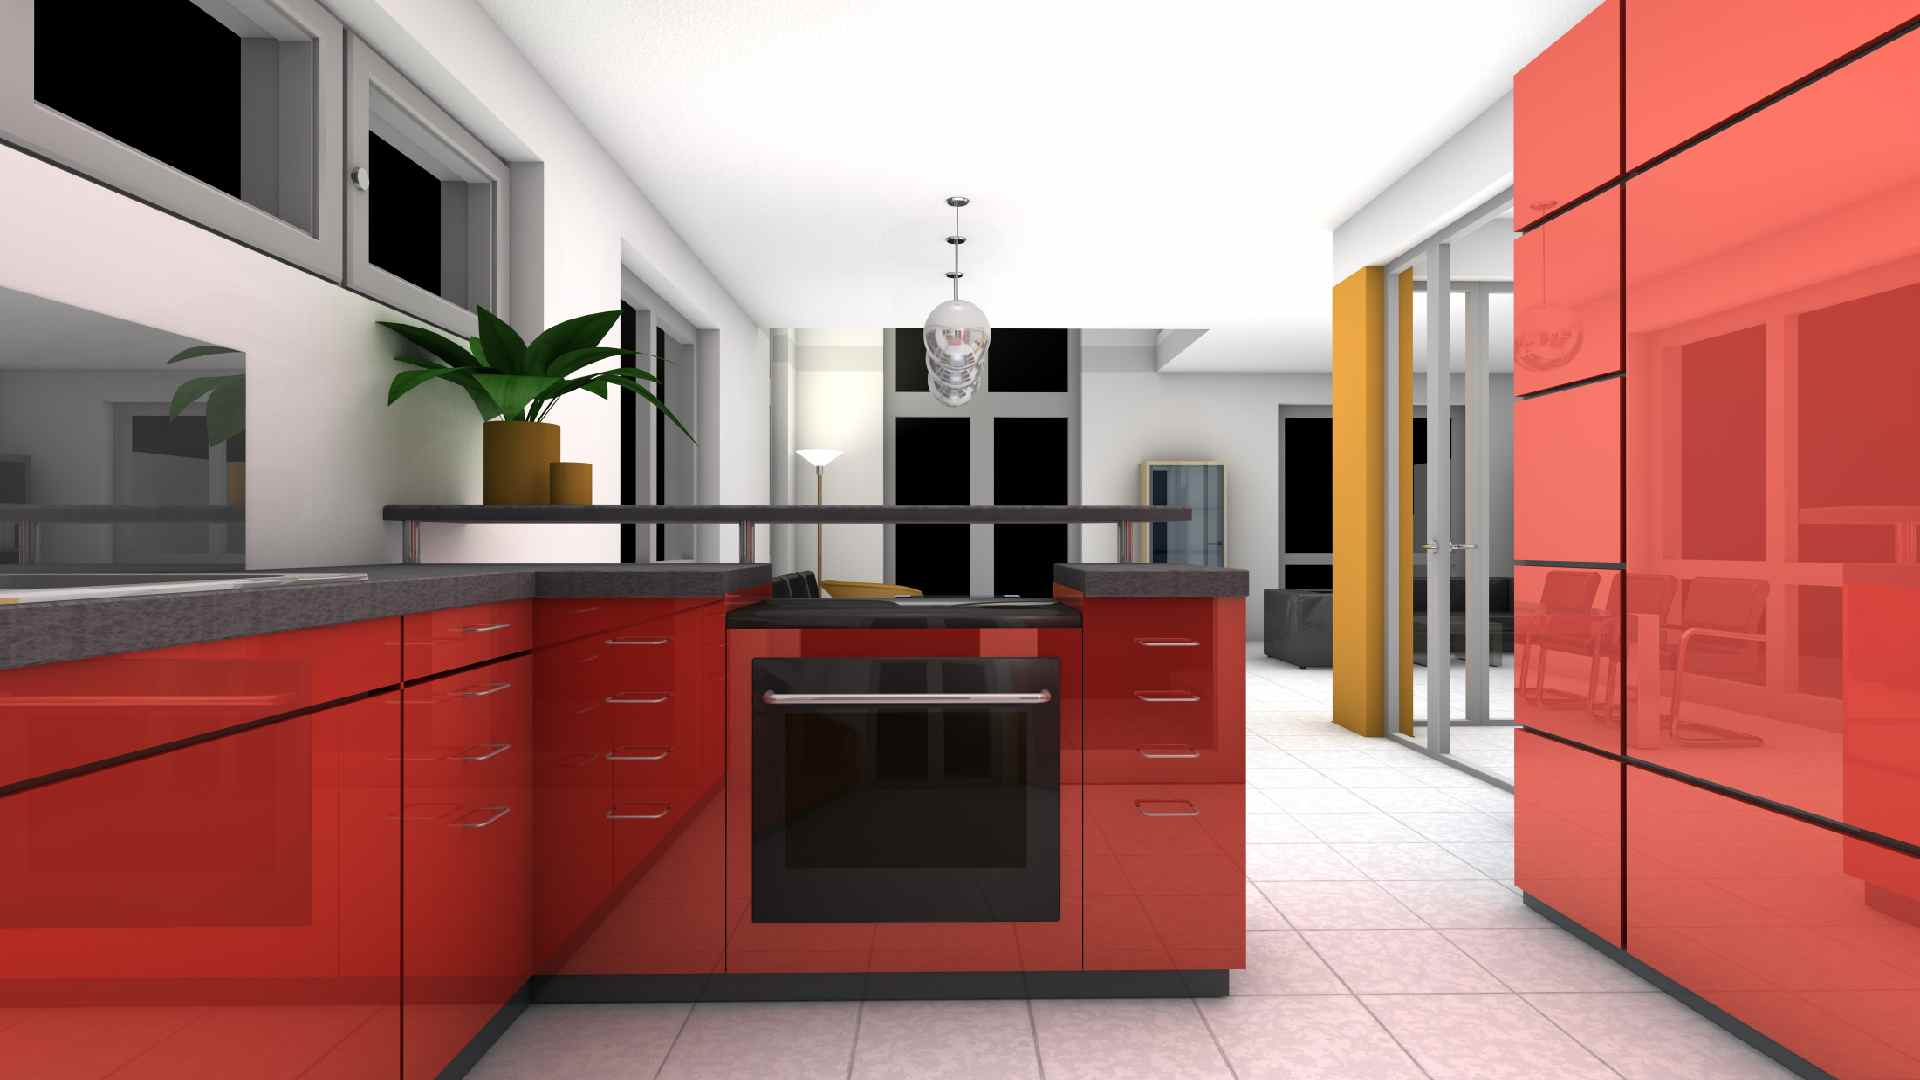 Useful Tips for Renovating the Kitchen